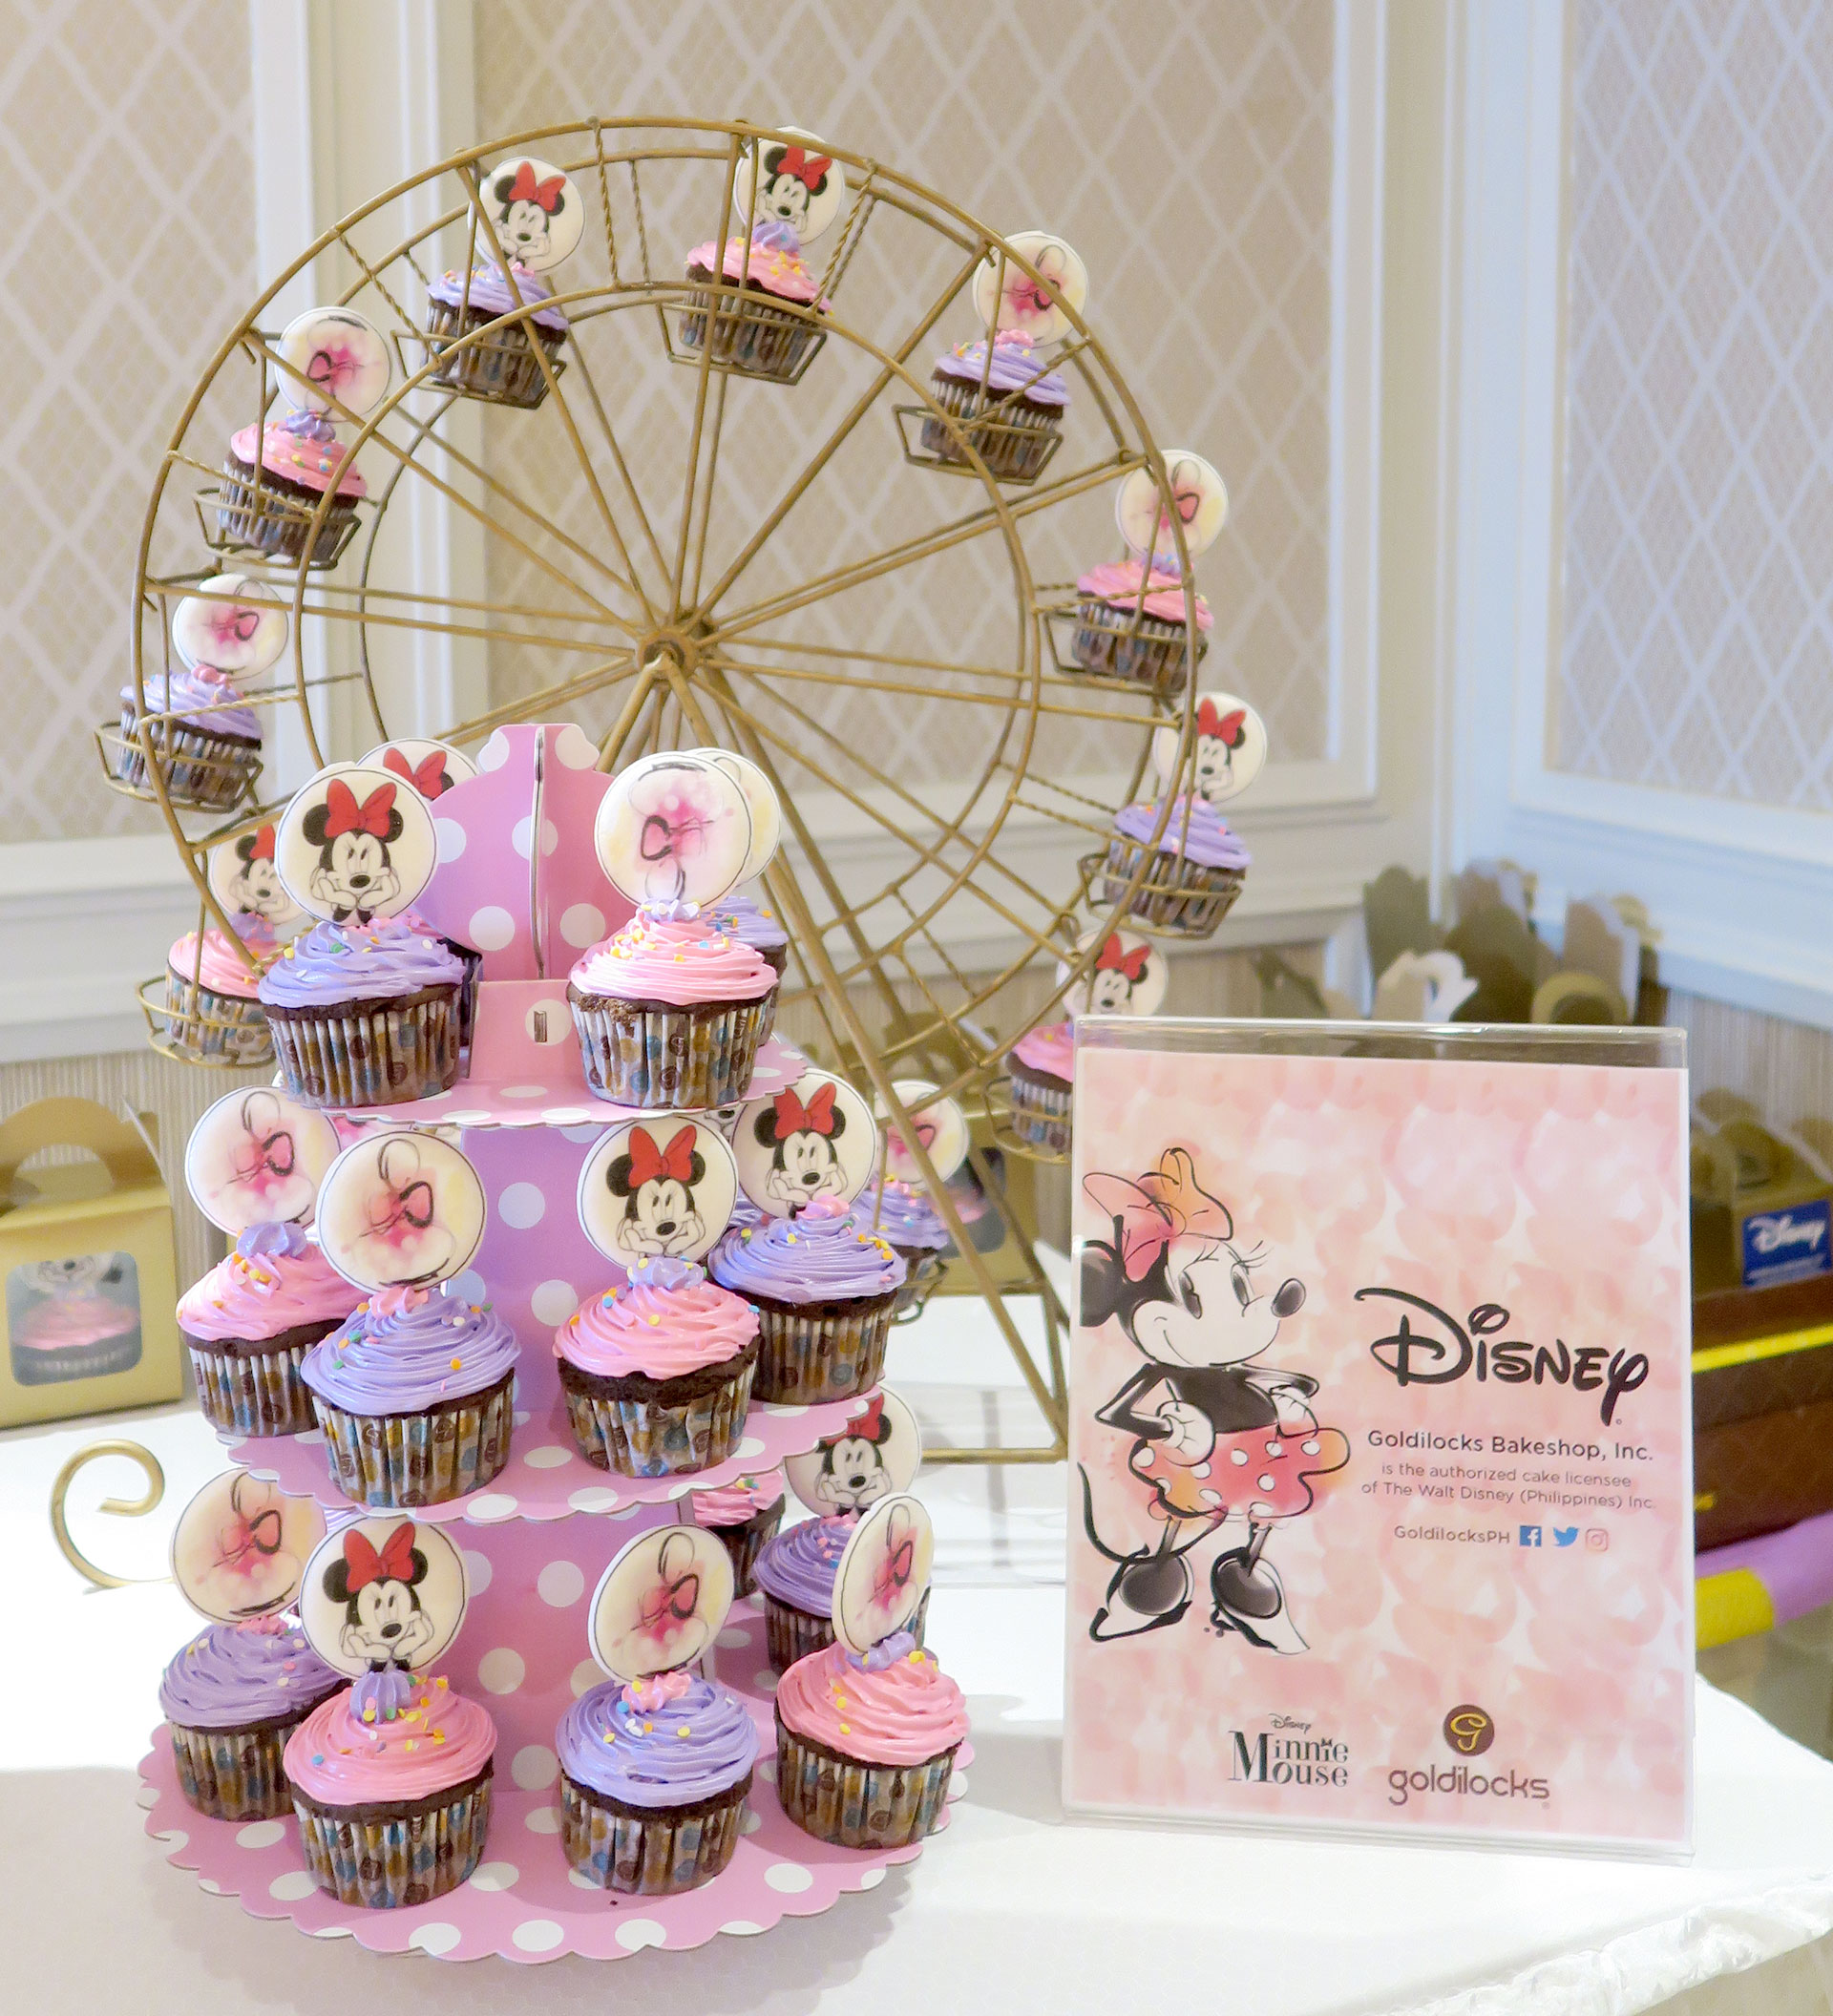 13 Girlstuff Minnie Mouse Nail Lacquers Collection Review Swatches Photos - Gen-zel She Sings Beauty